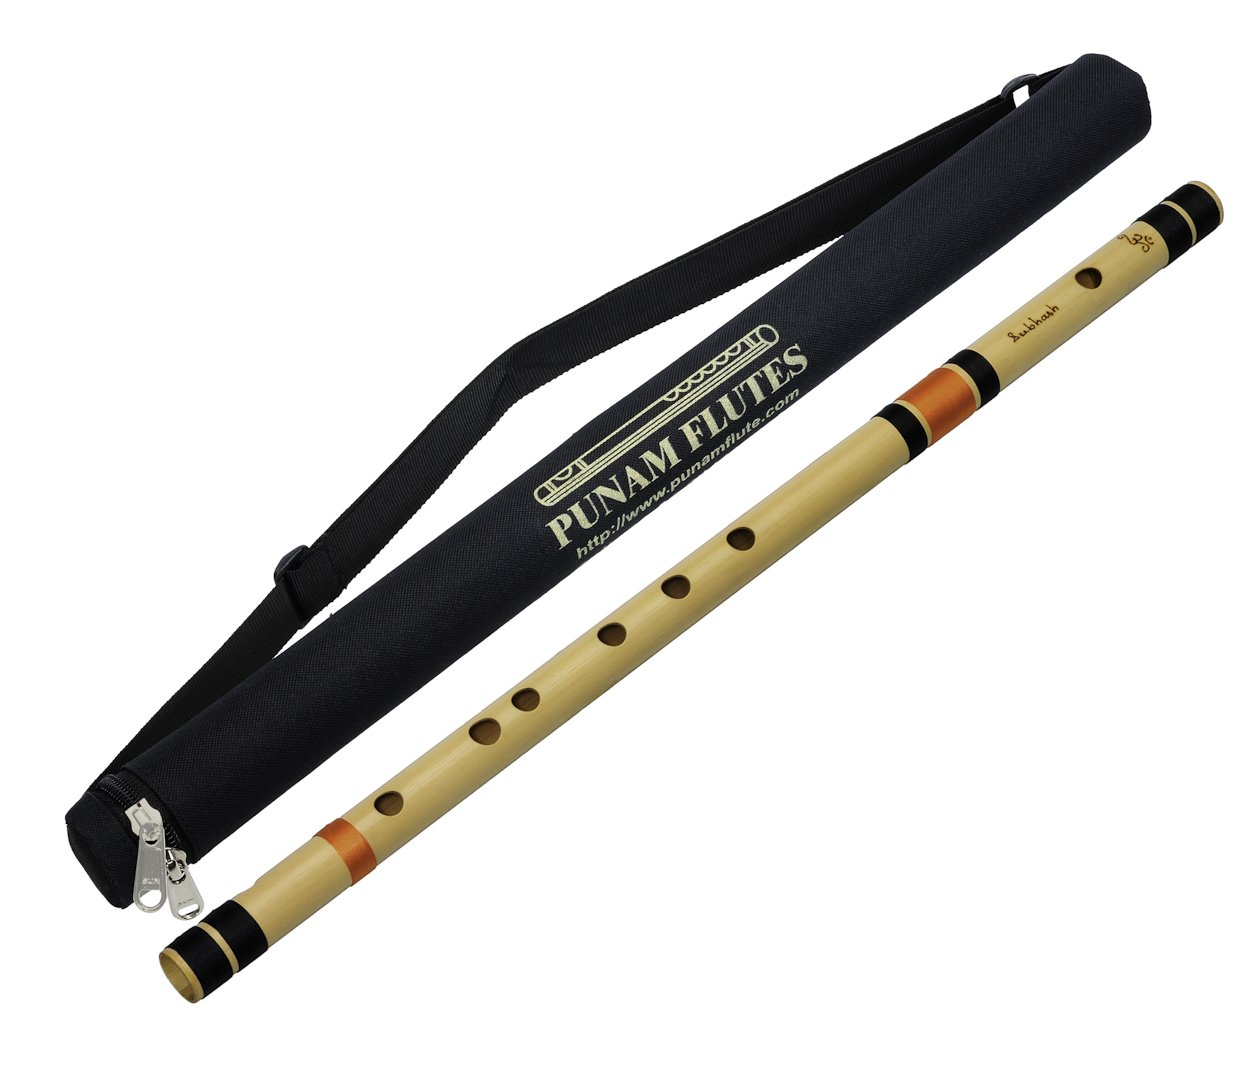 Punam Flutes A Natural Base Right Hand Bamboo Flute/Bansuri Size 22.5 Inches product image